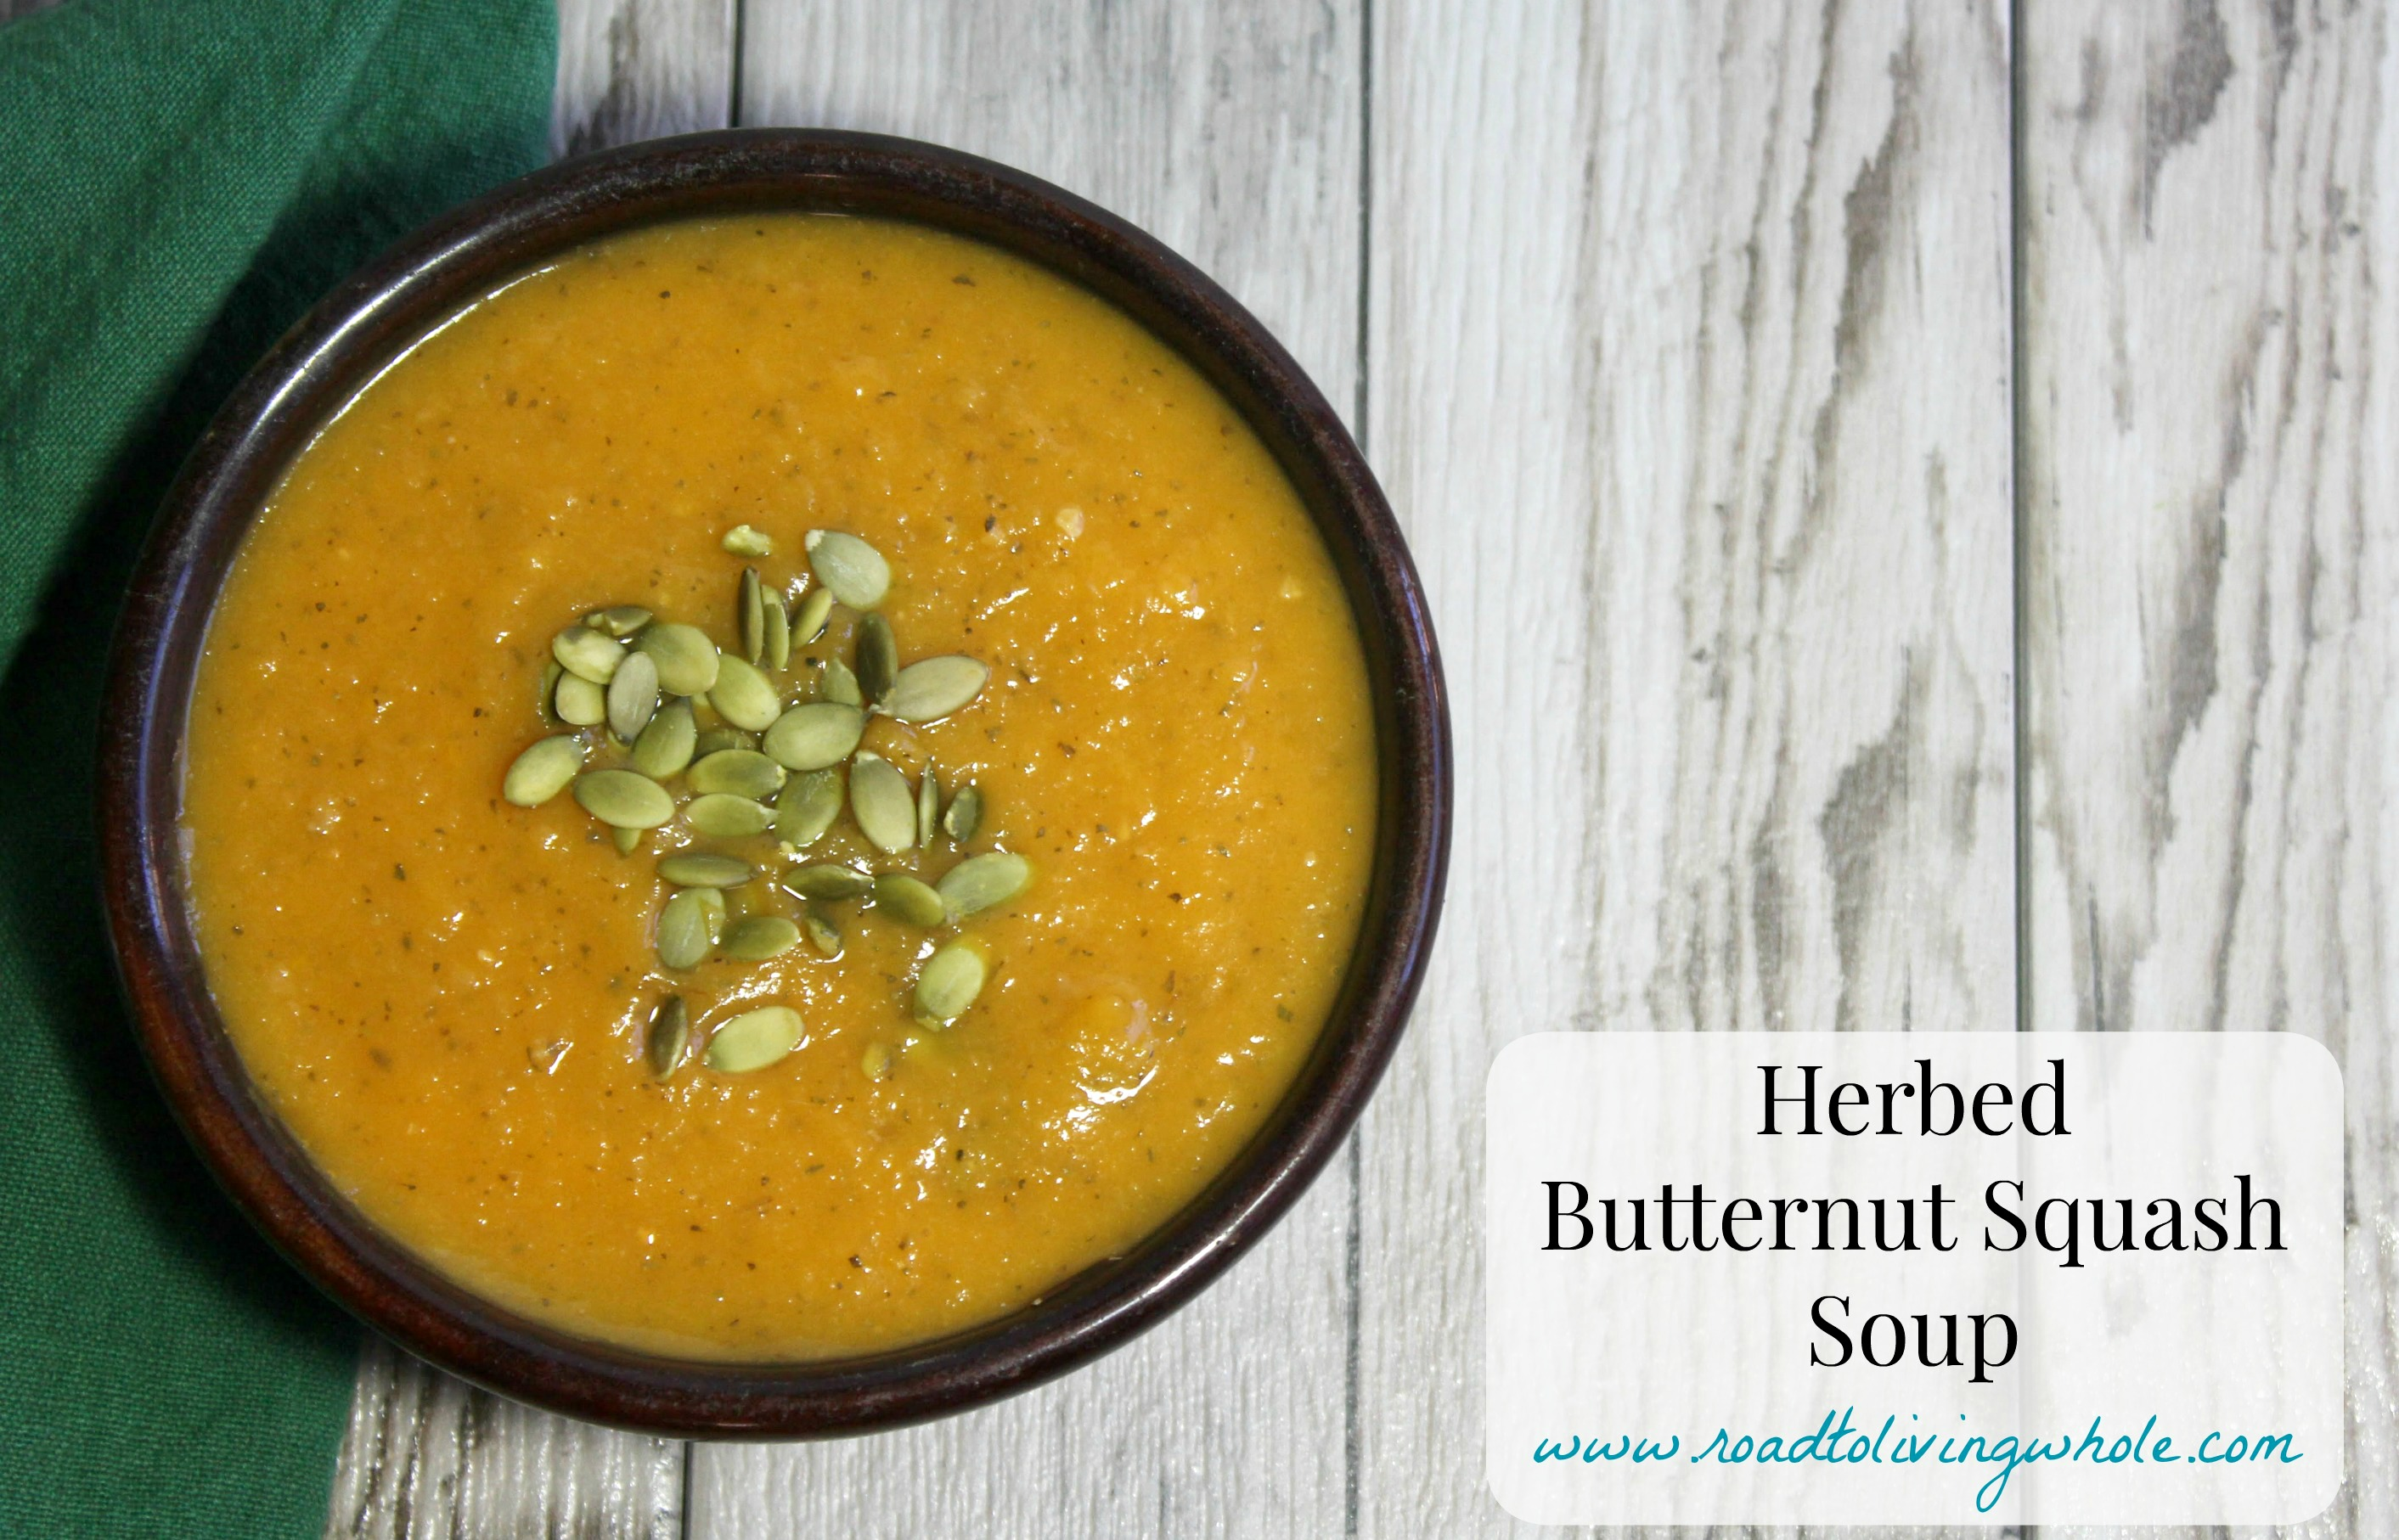 Herbed butternut squash soup